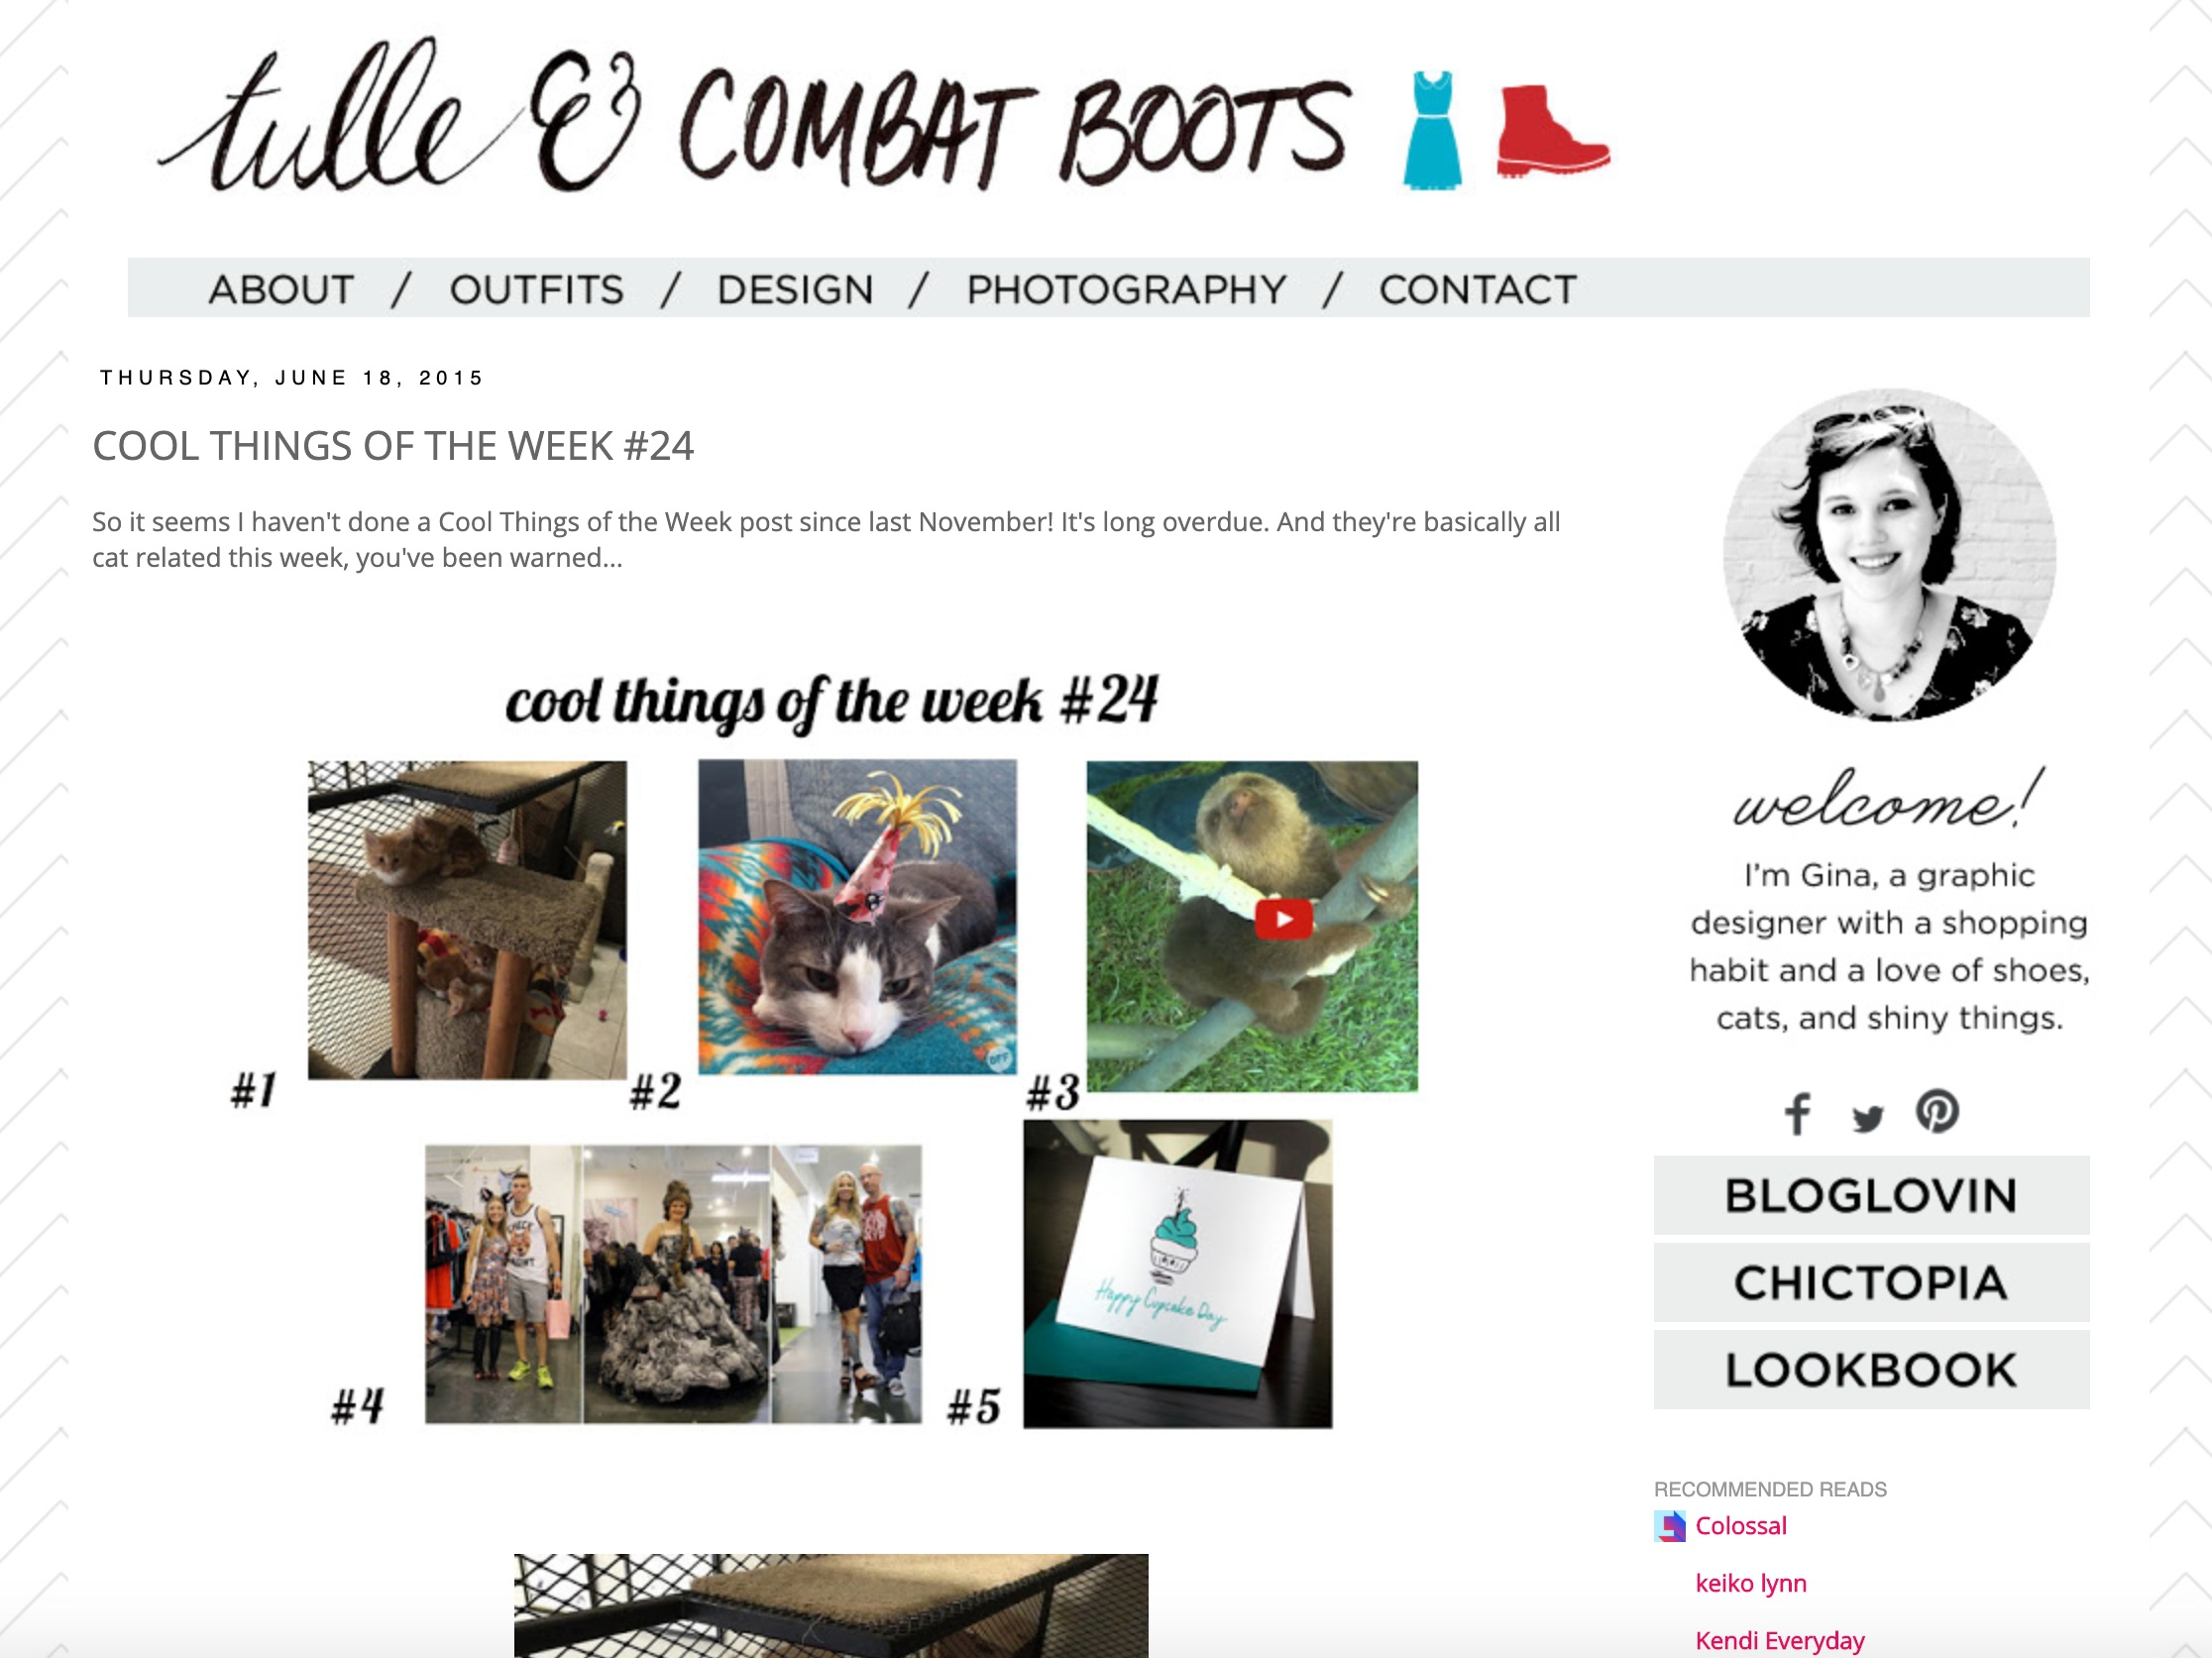 Tulle & Combat Boots website screenshot, cool things of the week, happy cupcake day card